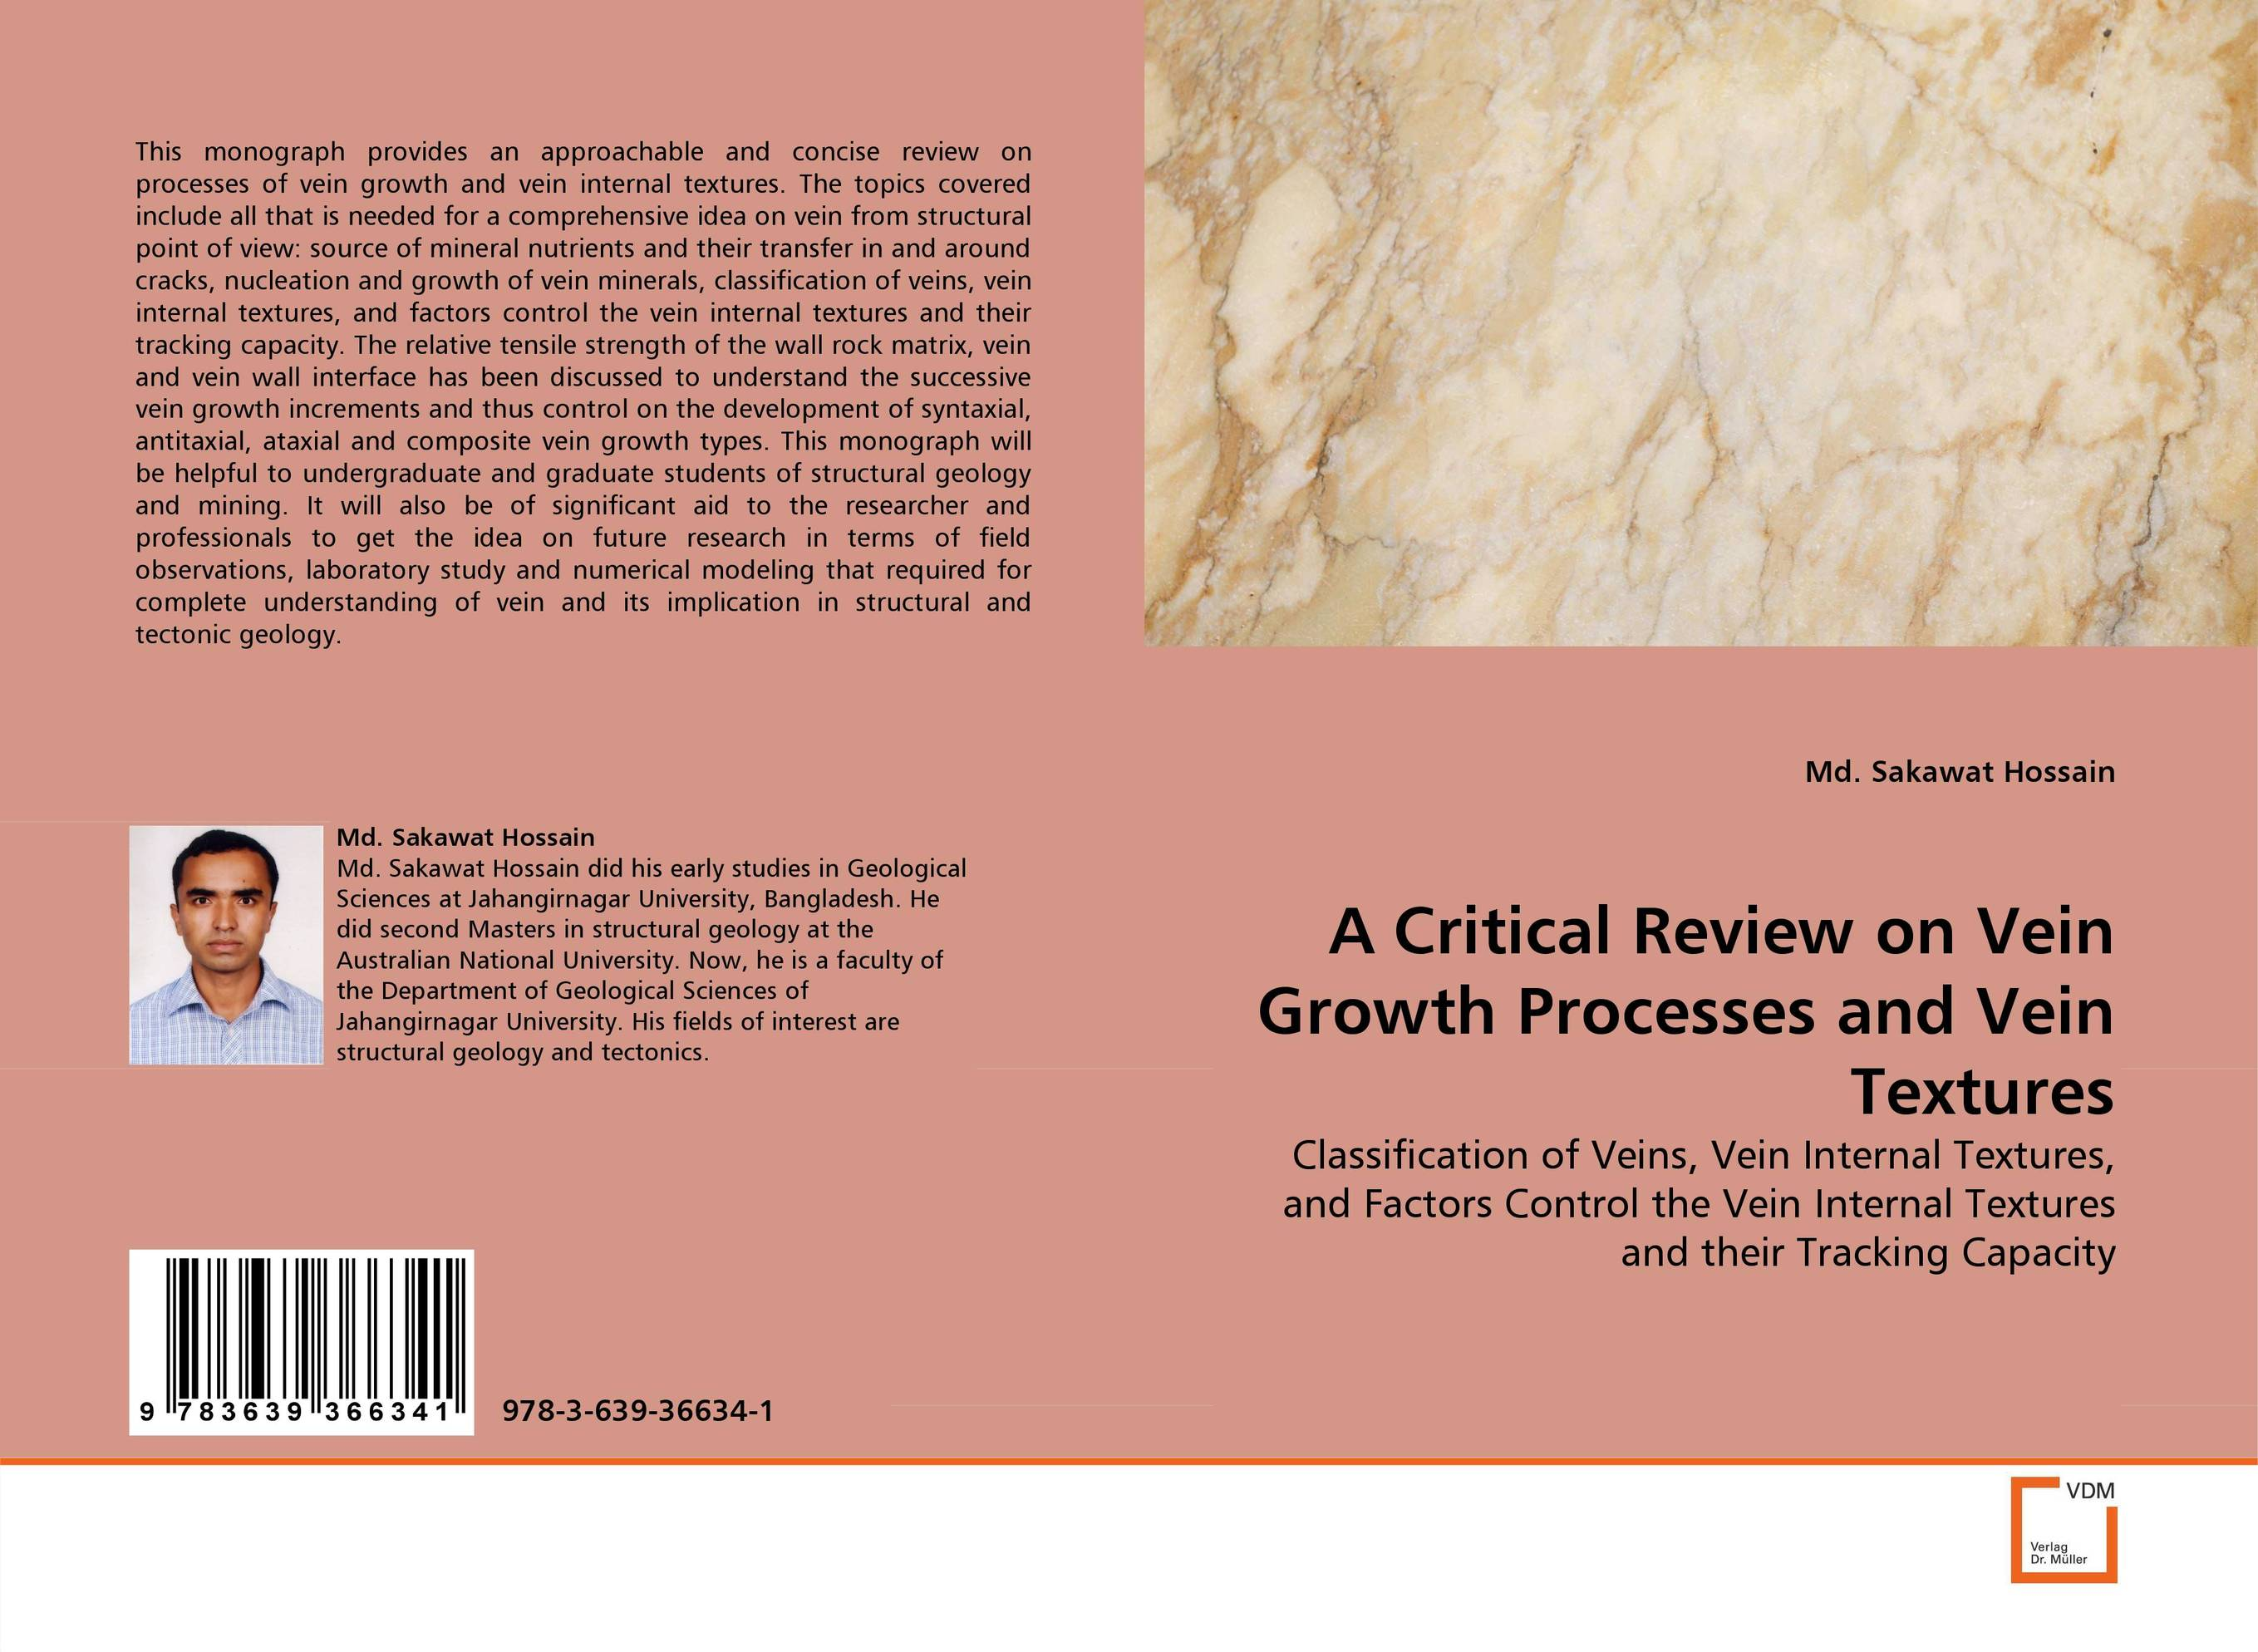 Фото A Critical Review on Vein Growth Processes and Vein Textures